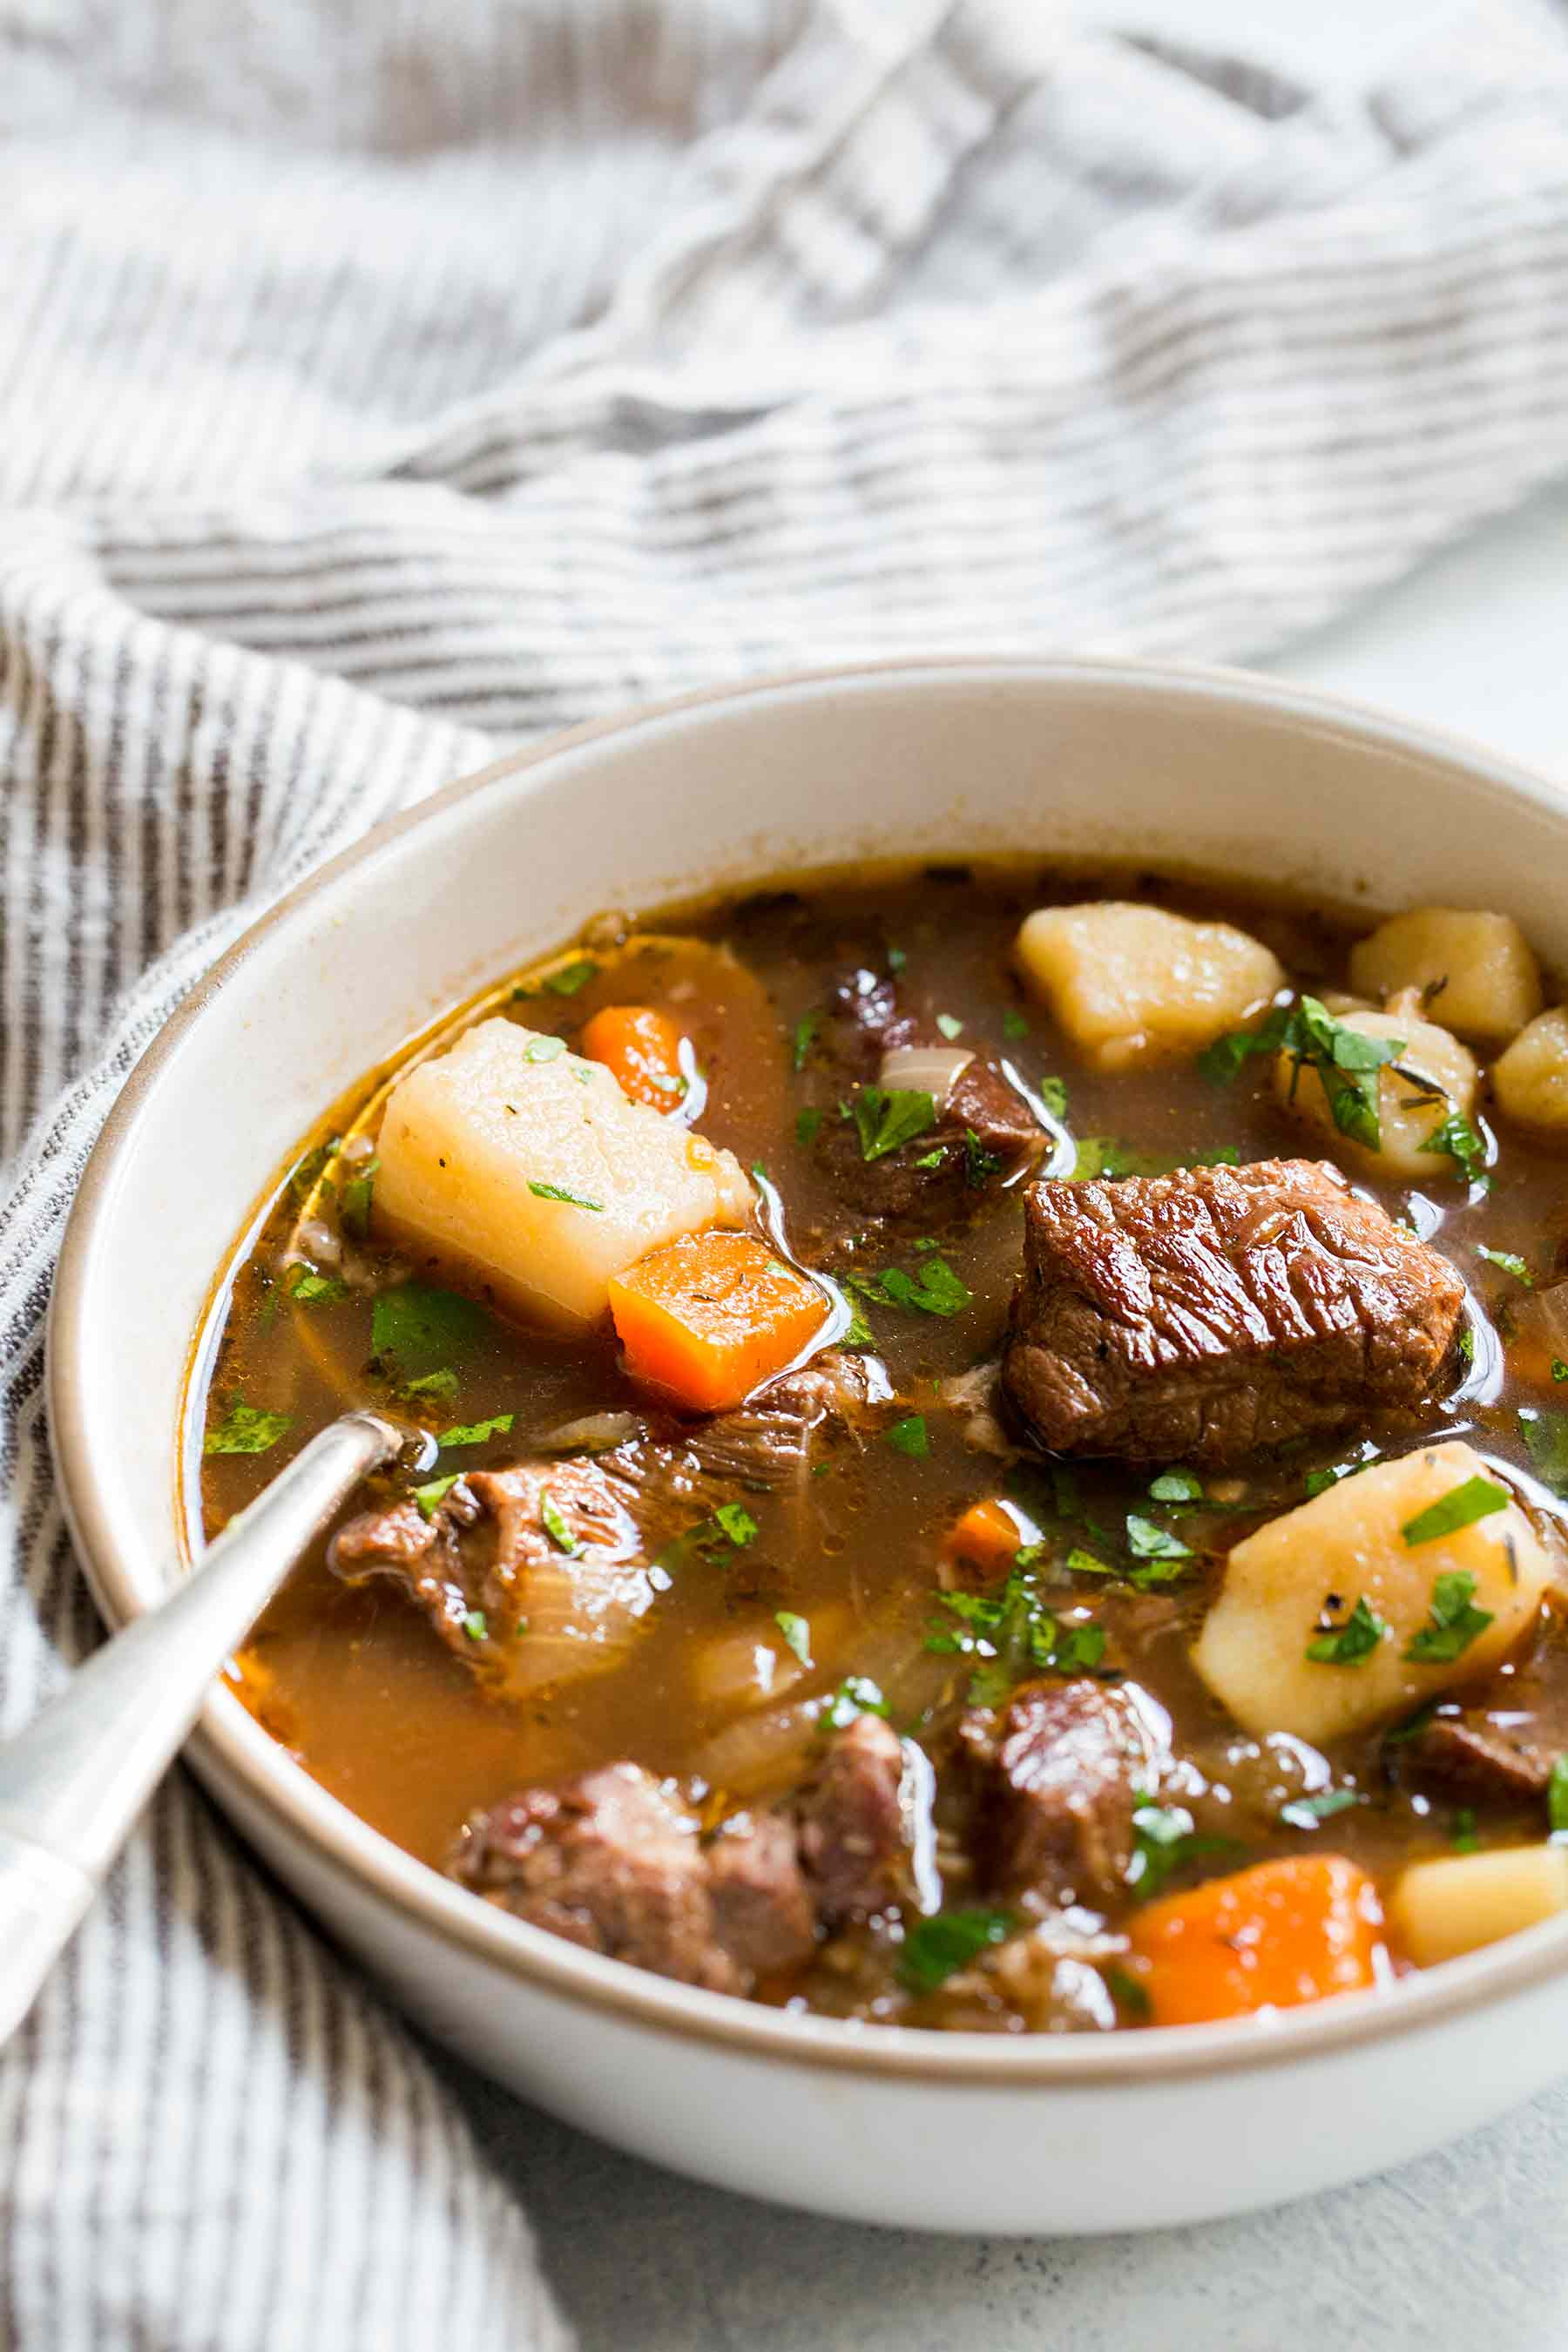 Recipes For Beef Stew  Irish Beef Stew Recipe with Video